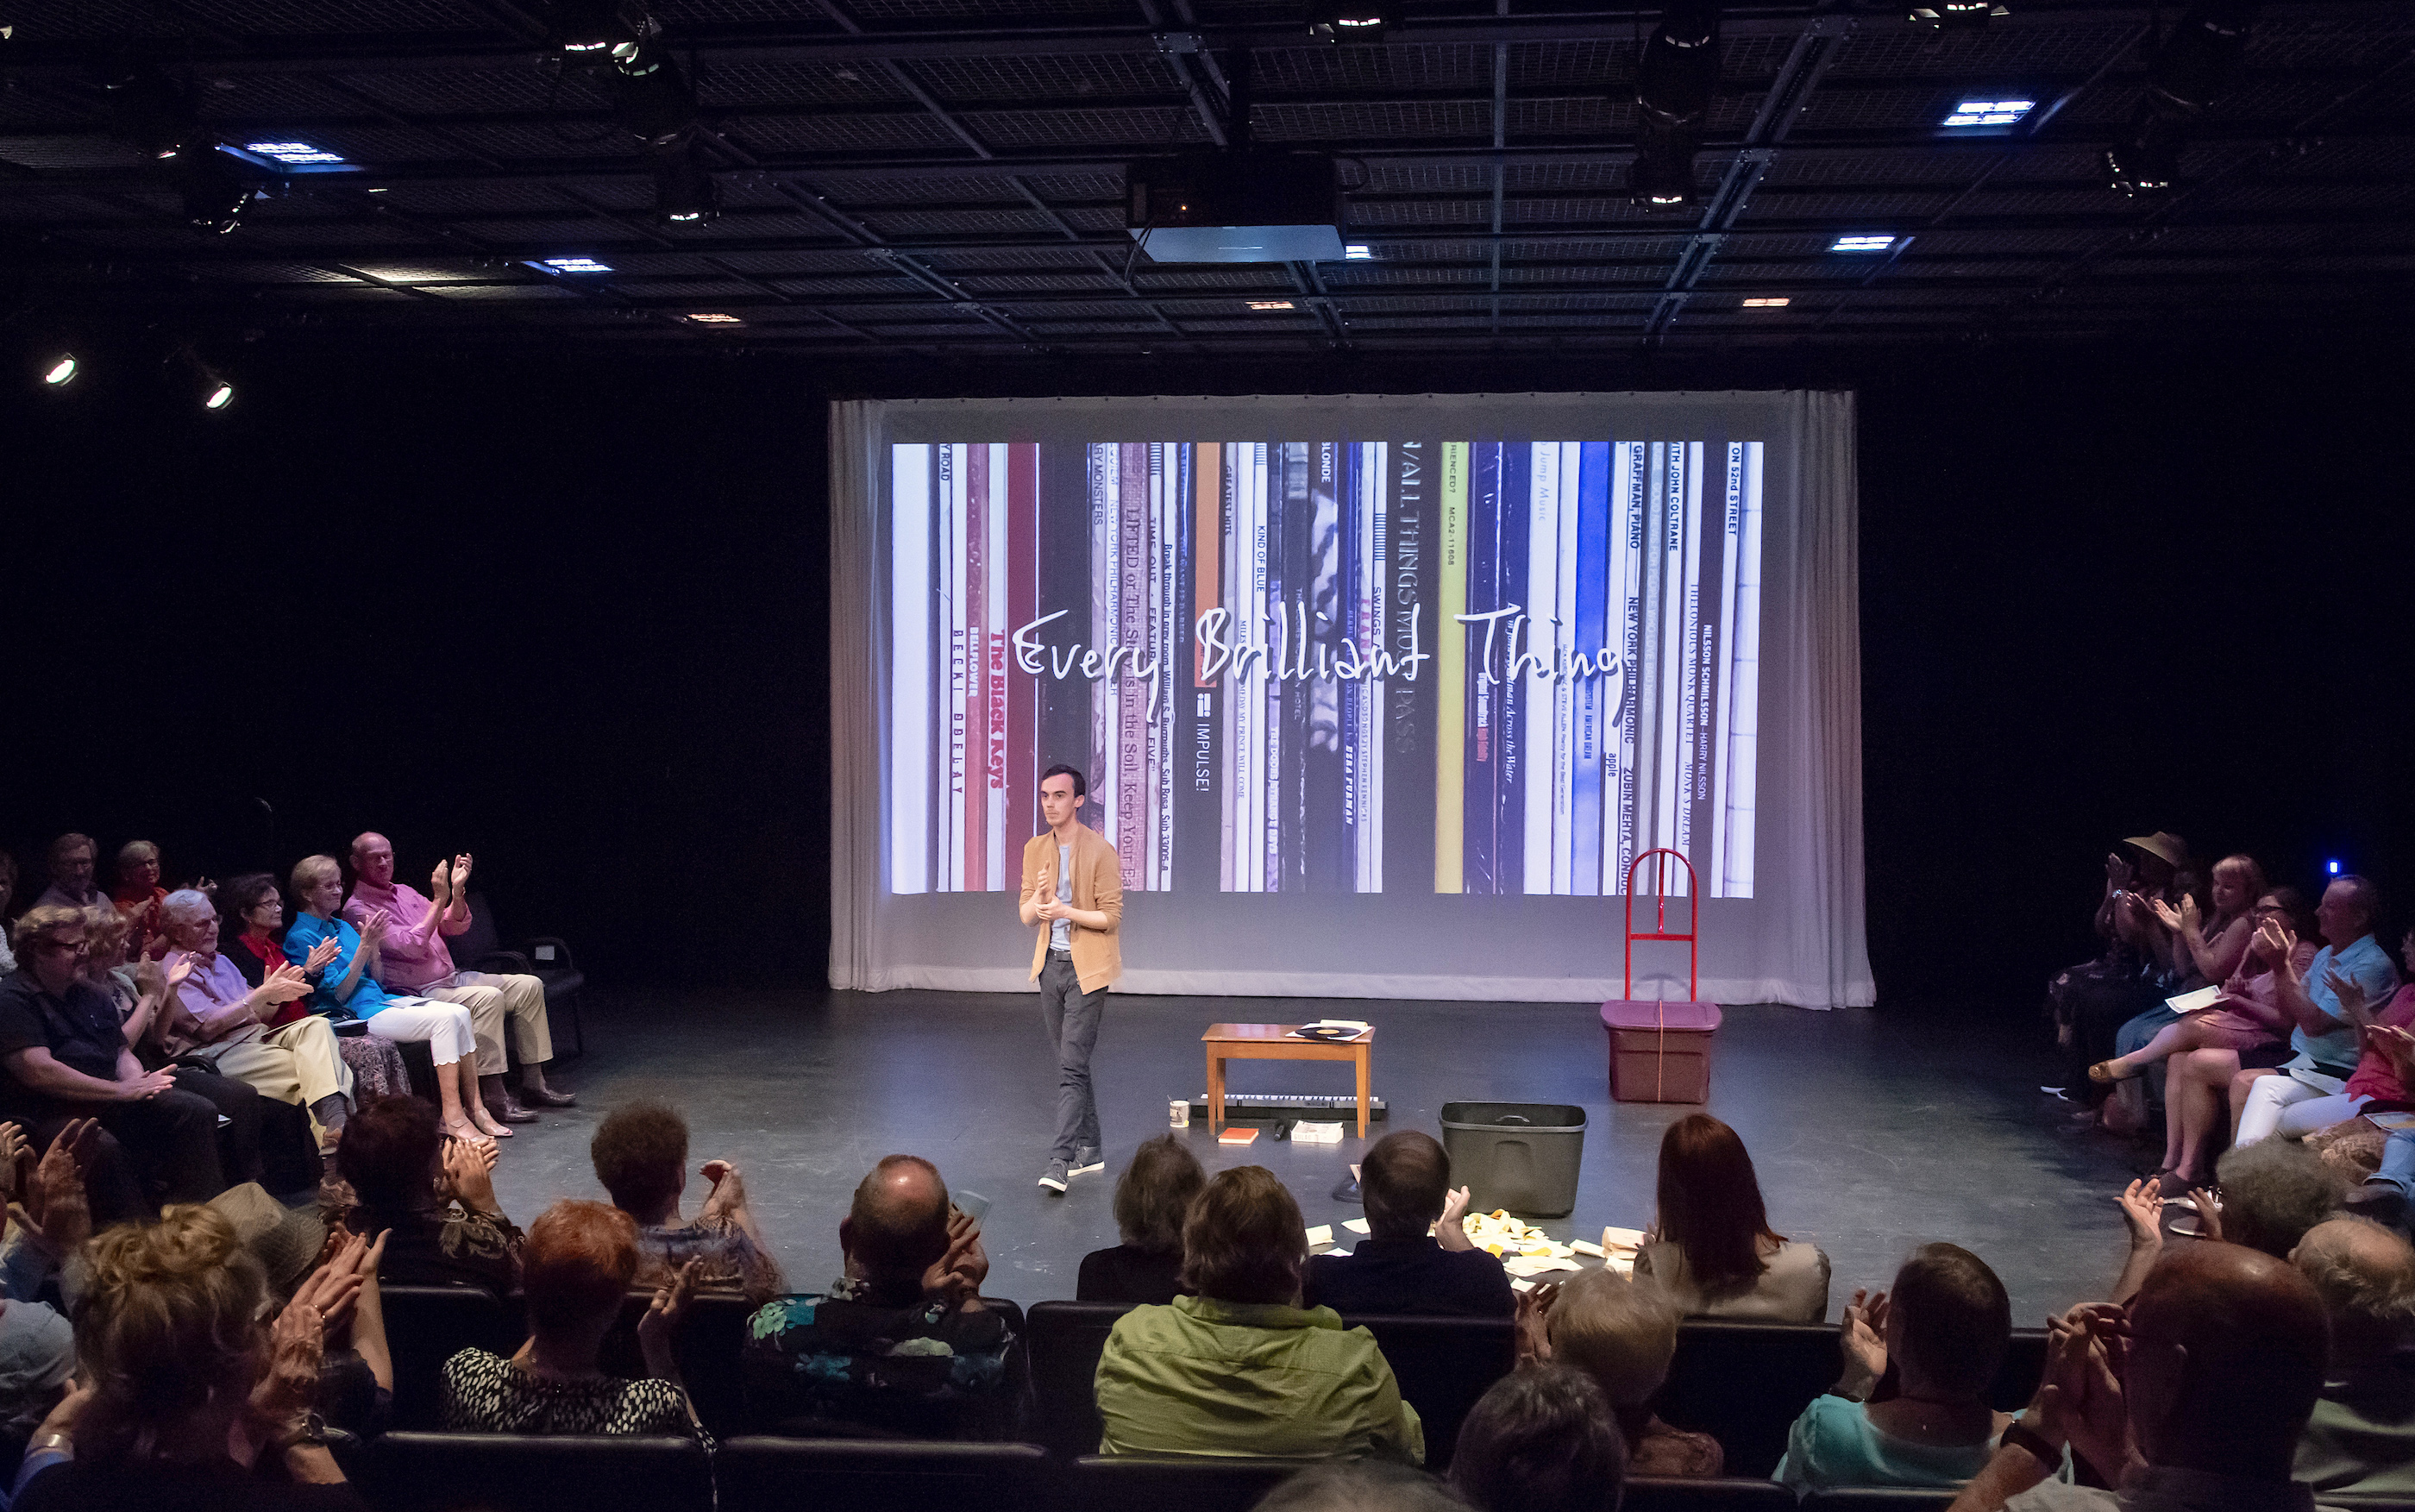 CAGED BIRDS: Tale of family conflict continues to reveal shared values